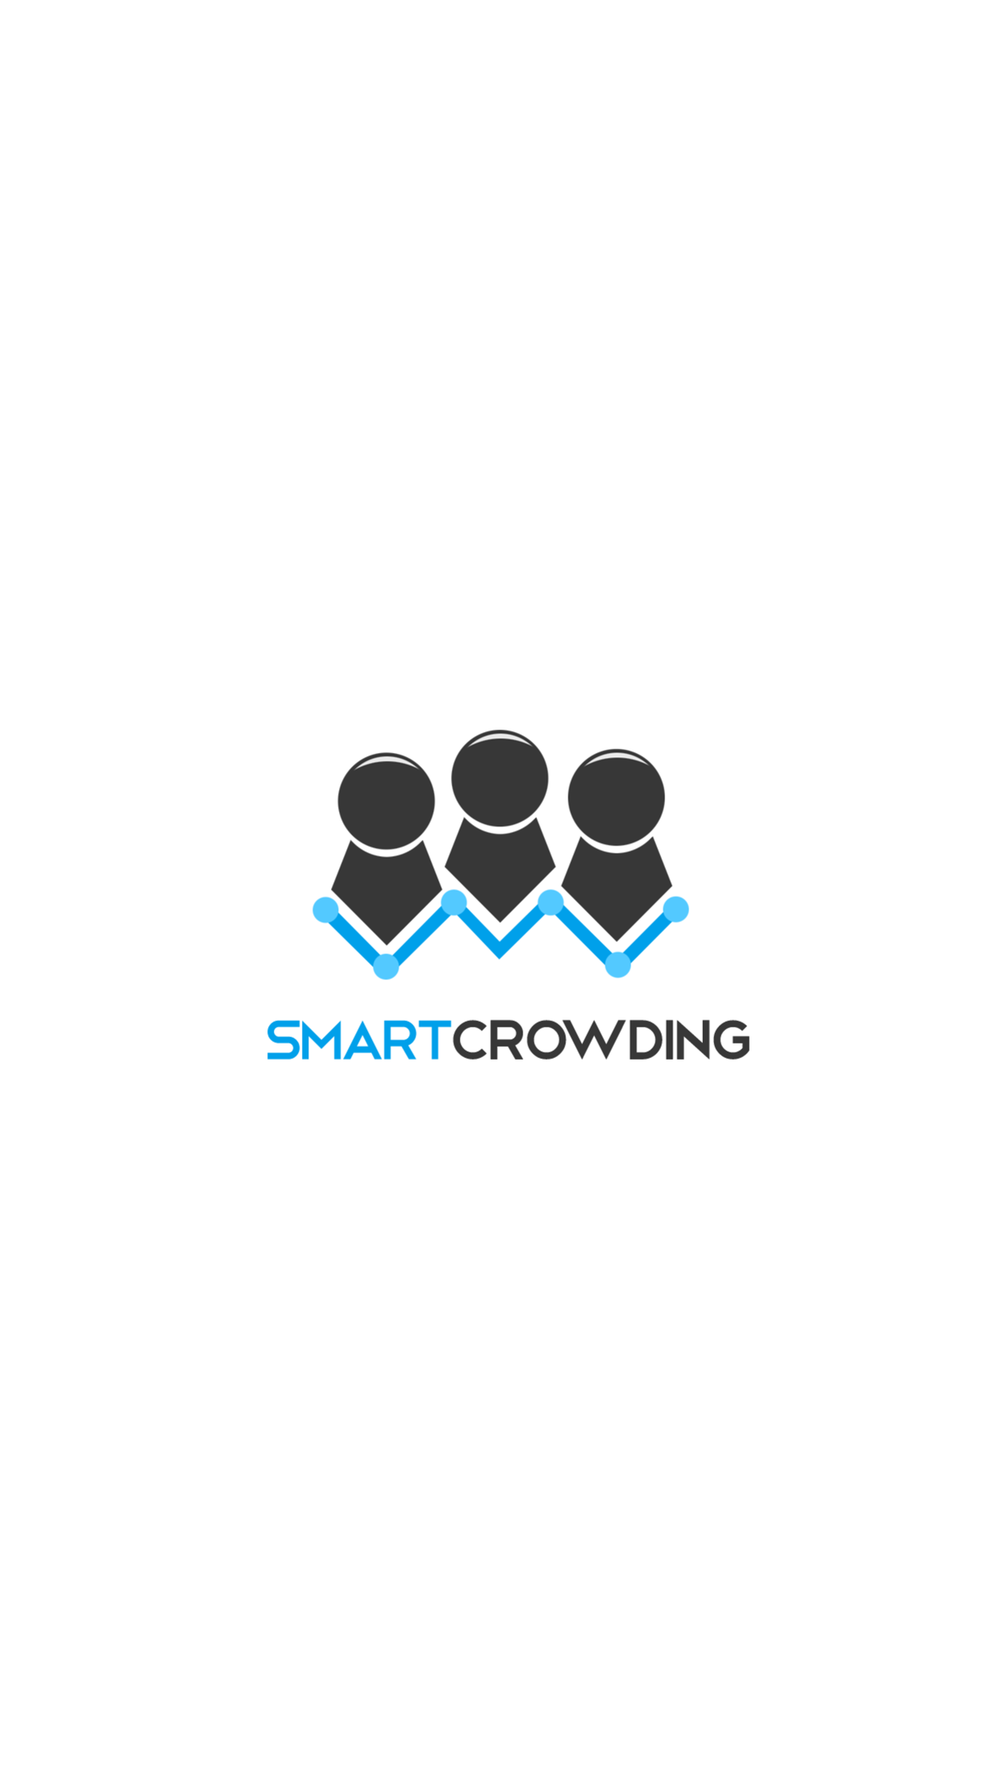 smartcrowding.png